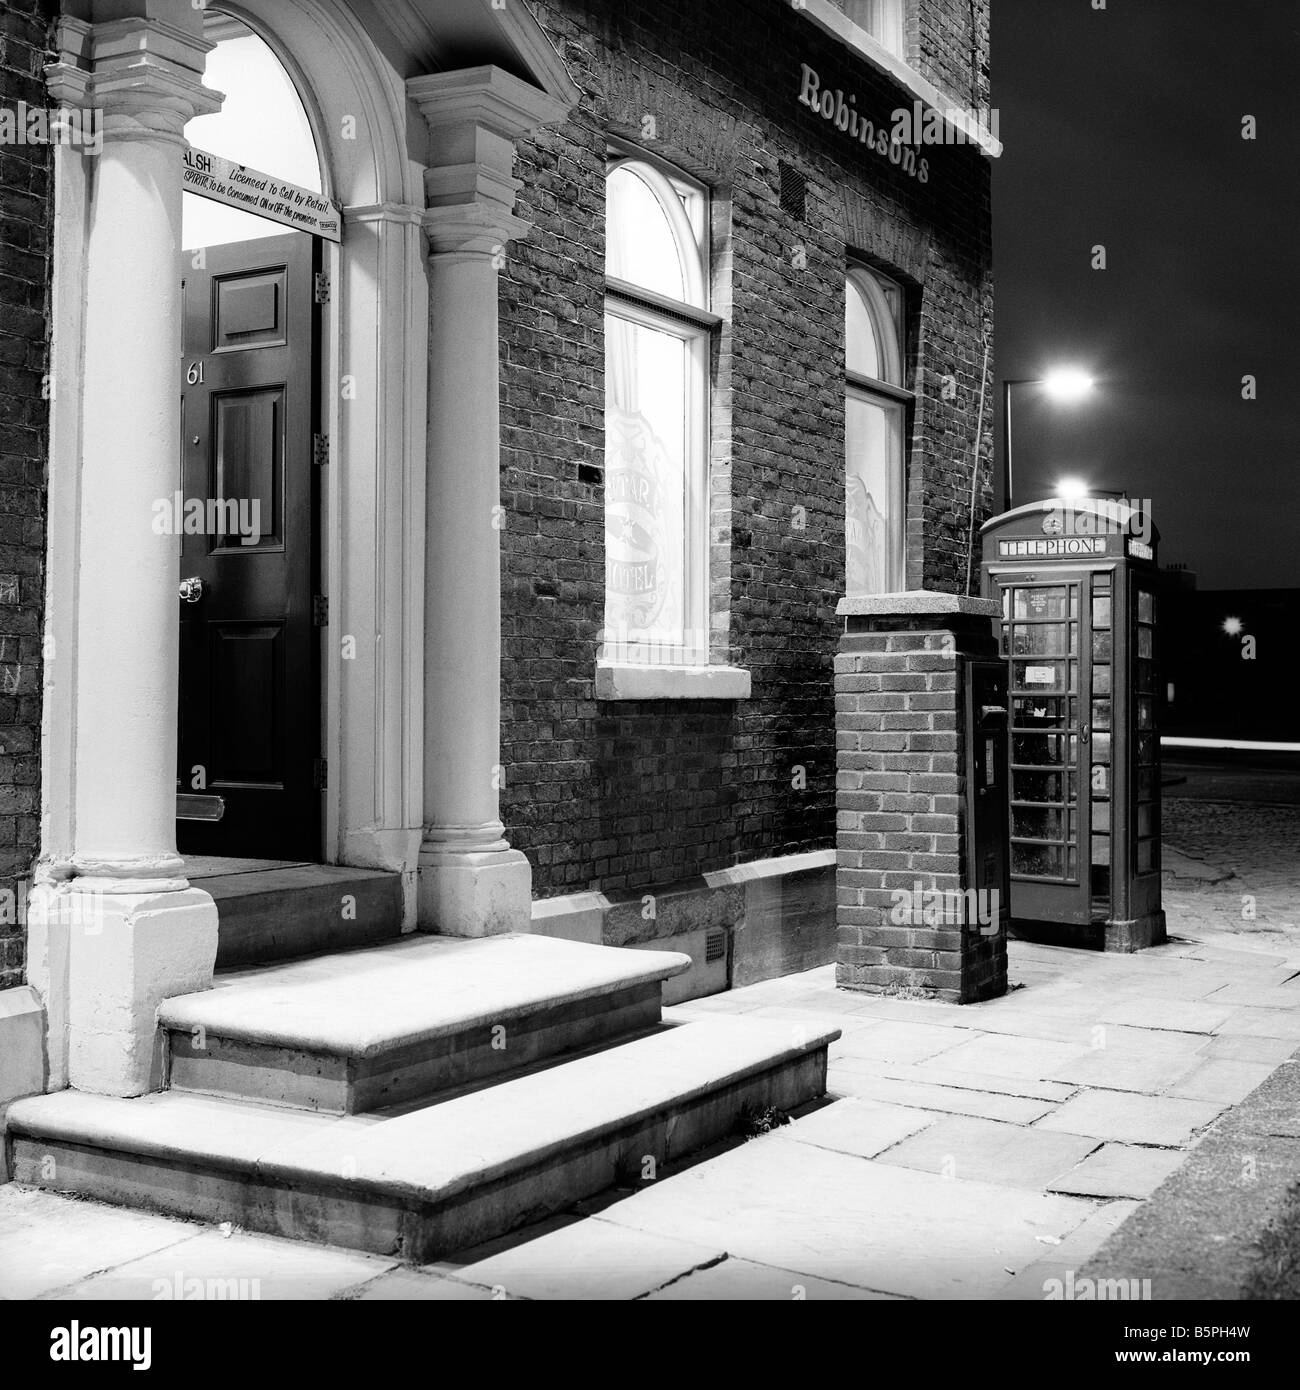 UK Cheshire Stockport Hillgate K6 phone box outside Star and Garter pub at night black and white - Stock Image